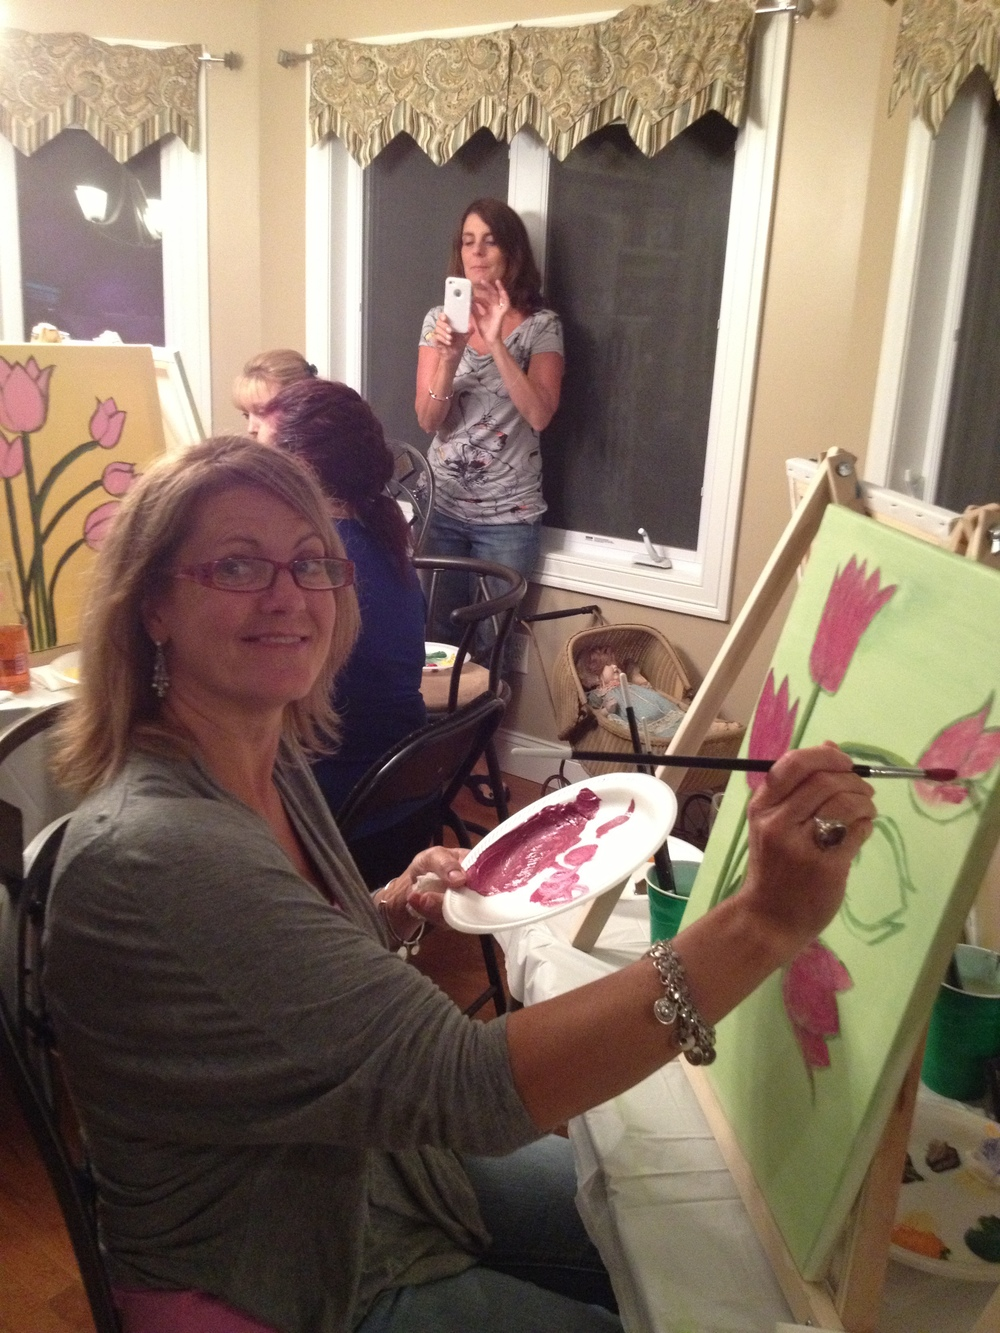 Lauren M. painting with her own flare